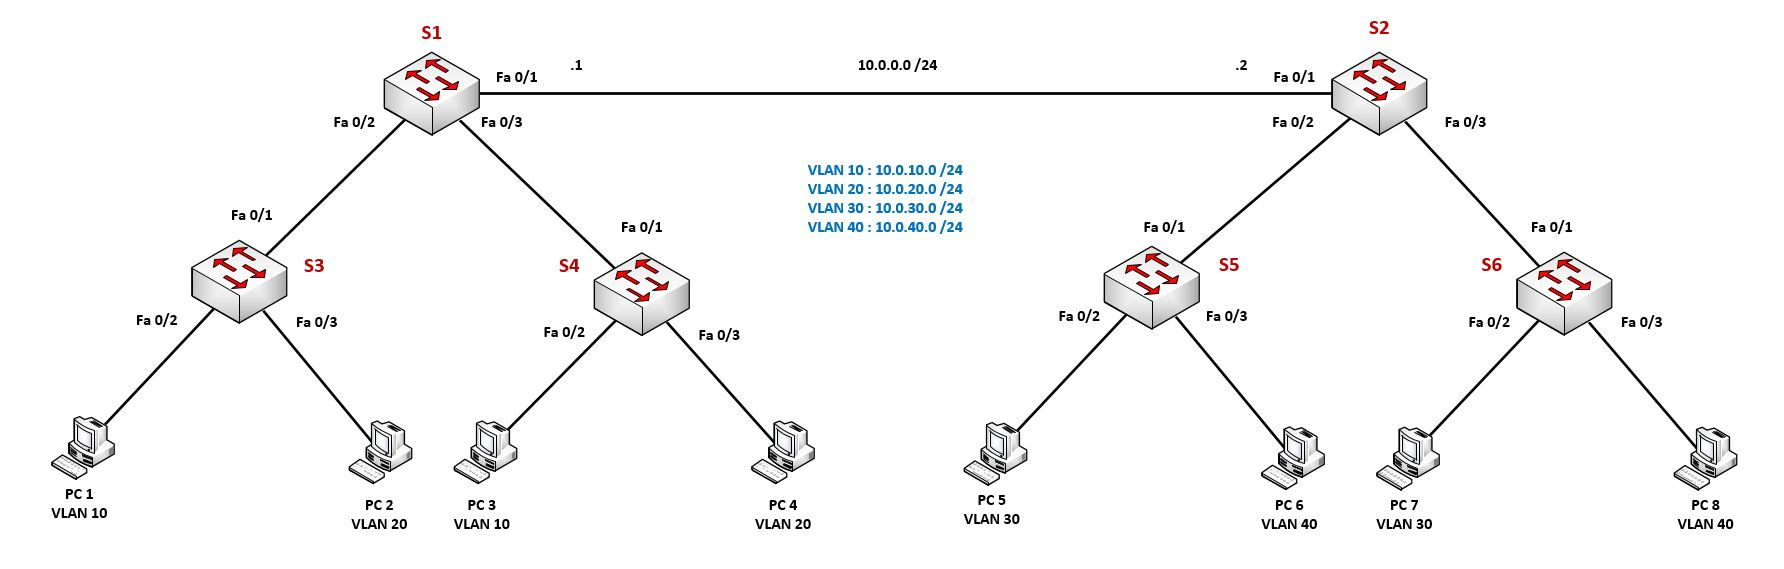 Topologie Inter VLAN Routing Switch L3